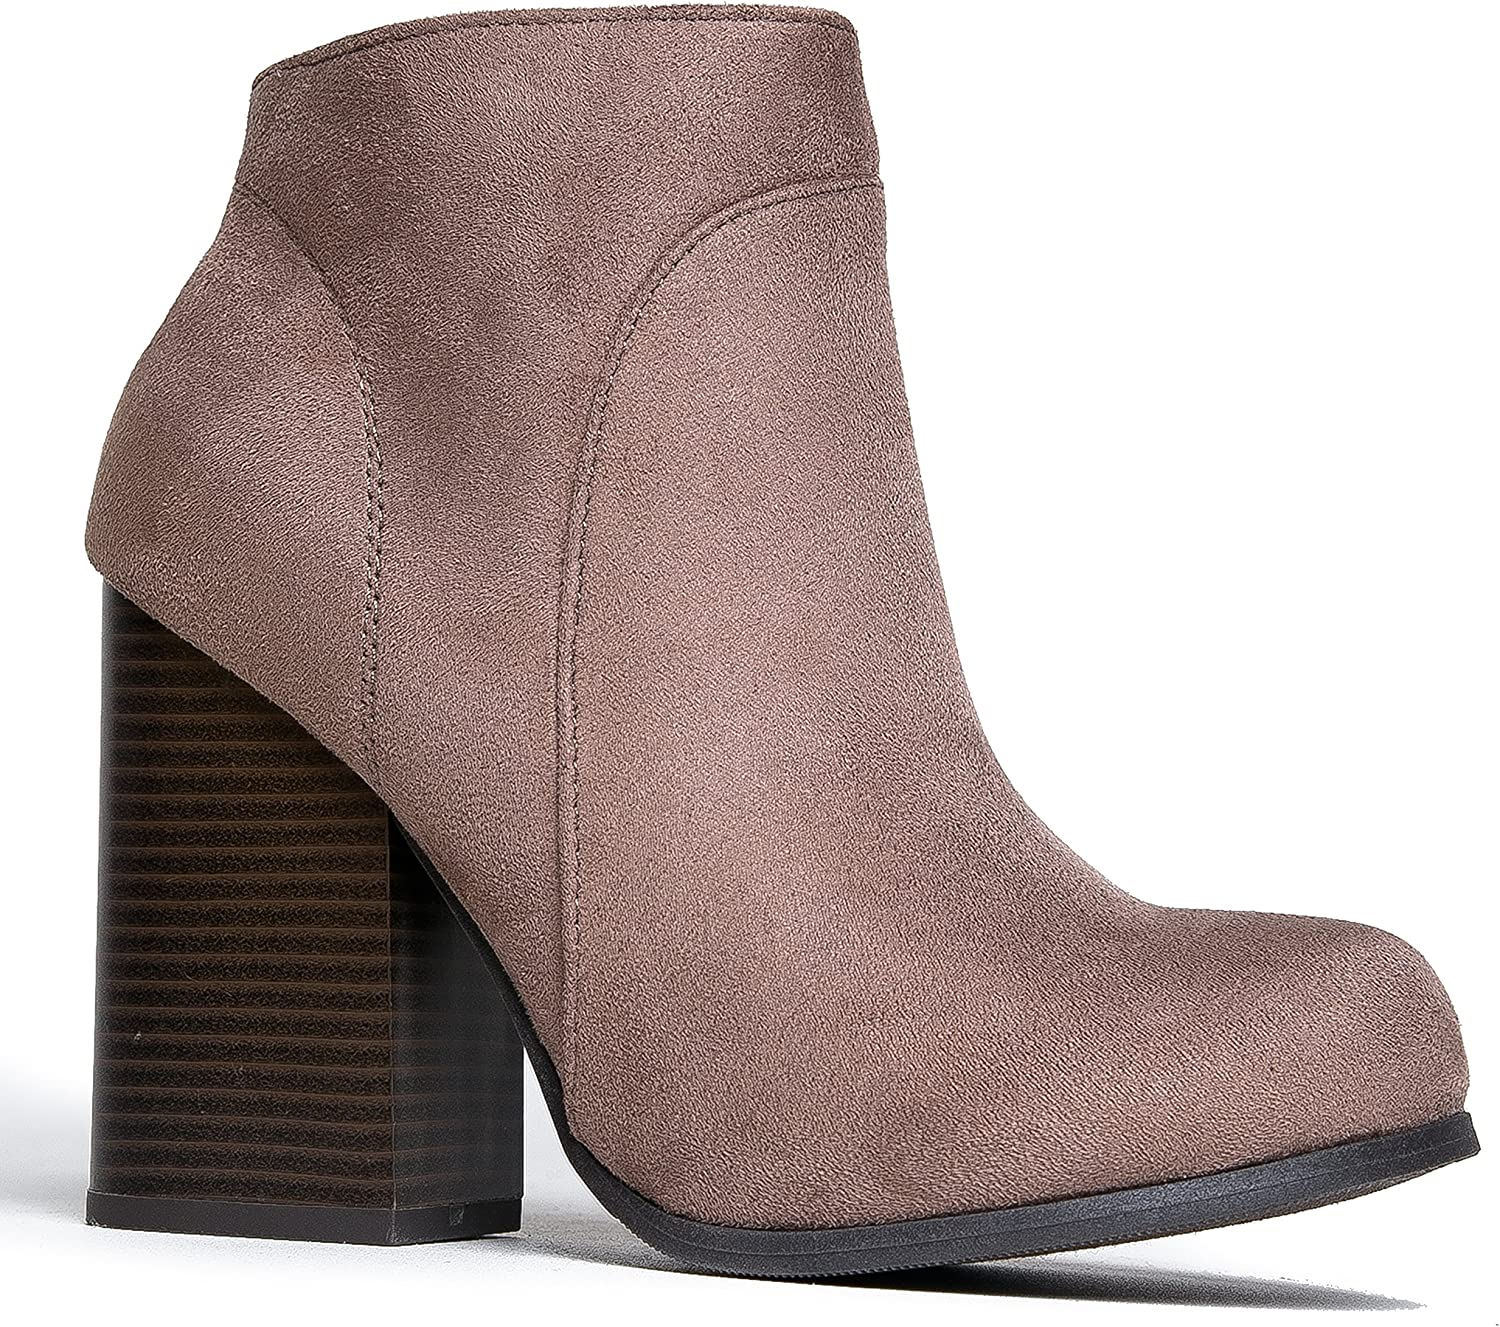 J. Adams Classic Chunky Heel Bootie - Comfortable Western Closed Toe Boot - Zipper Low Heel Casual shoes - Eden by